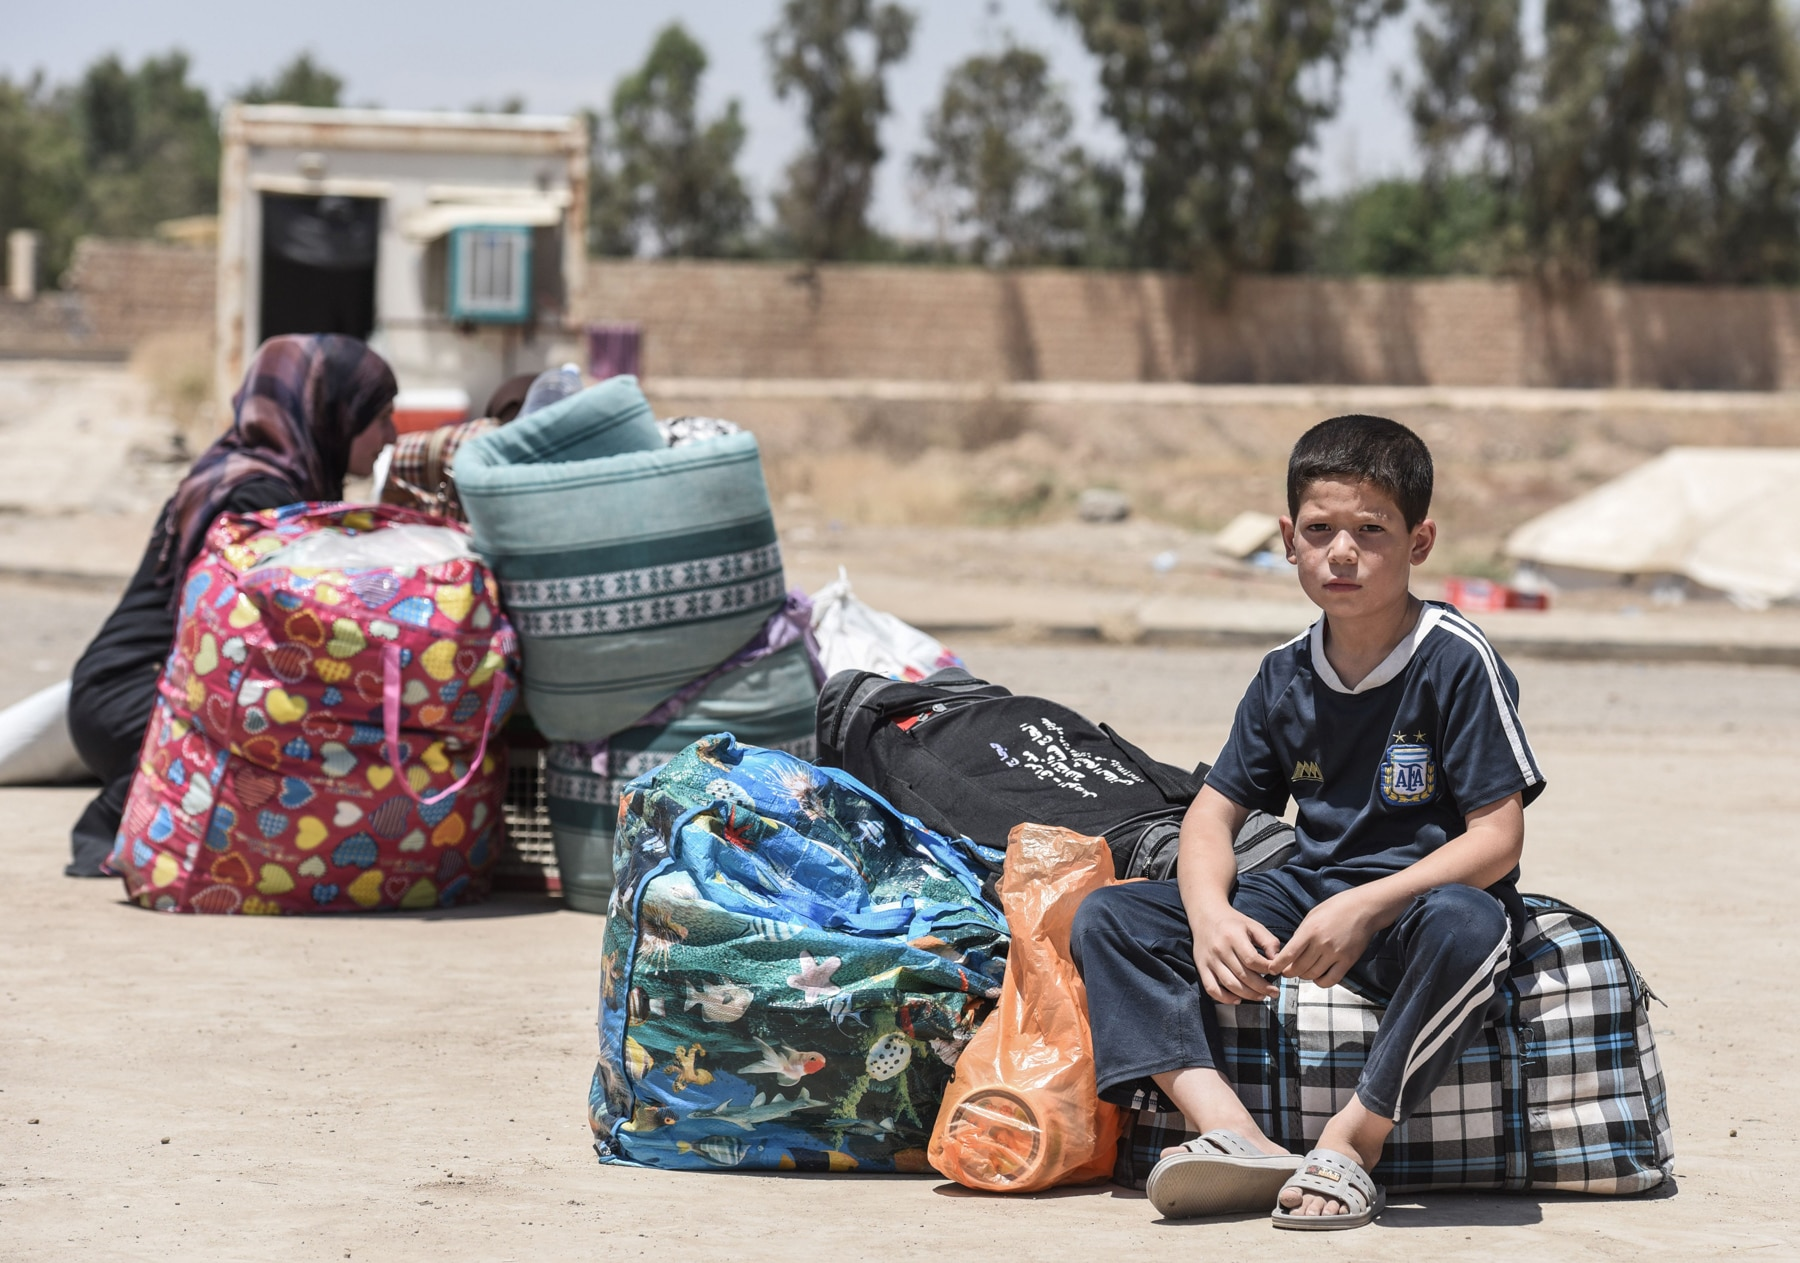 A boy sitting on his belongings in the street (© Mohamed el-Shahed/AFP/Getty Images)